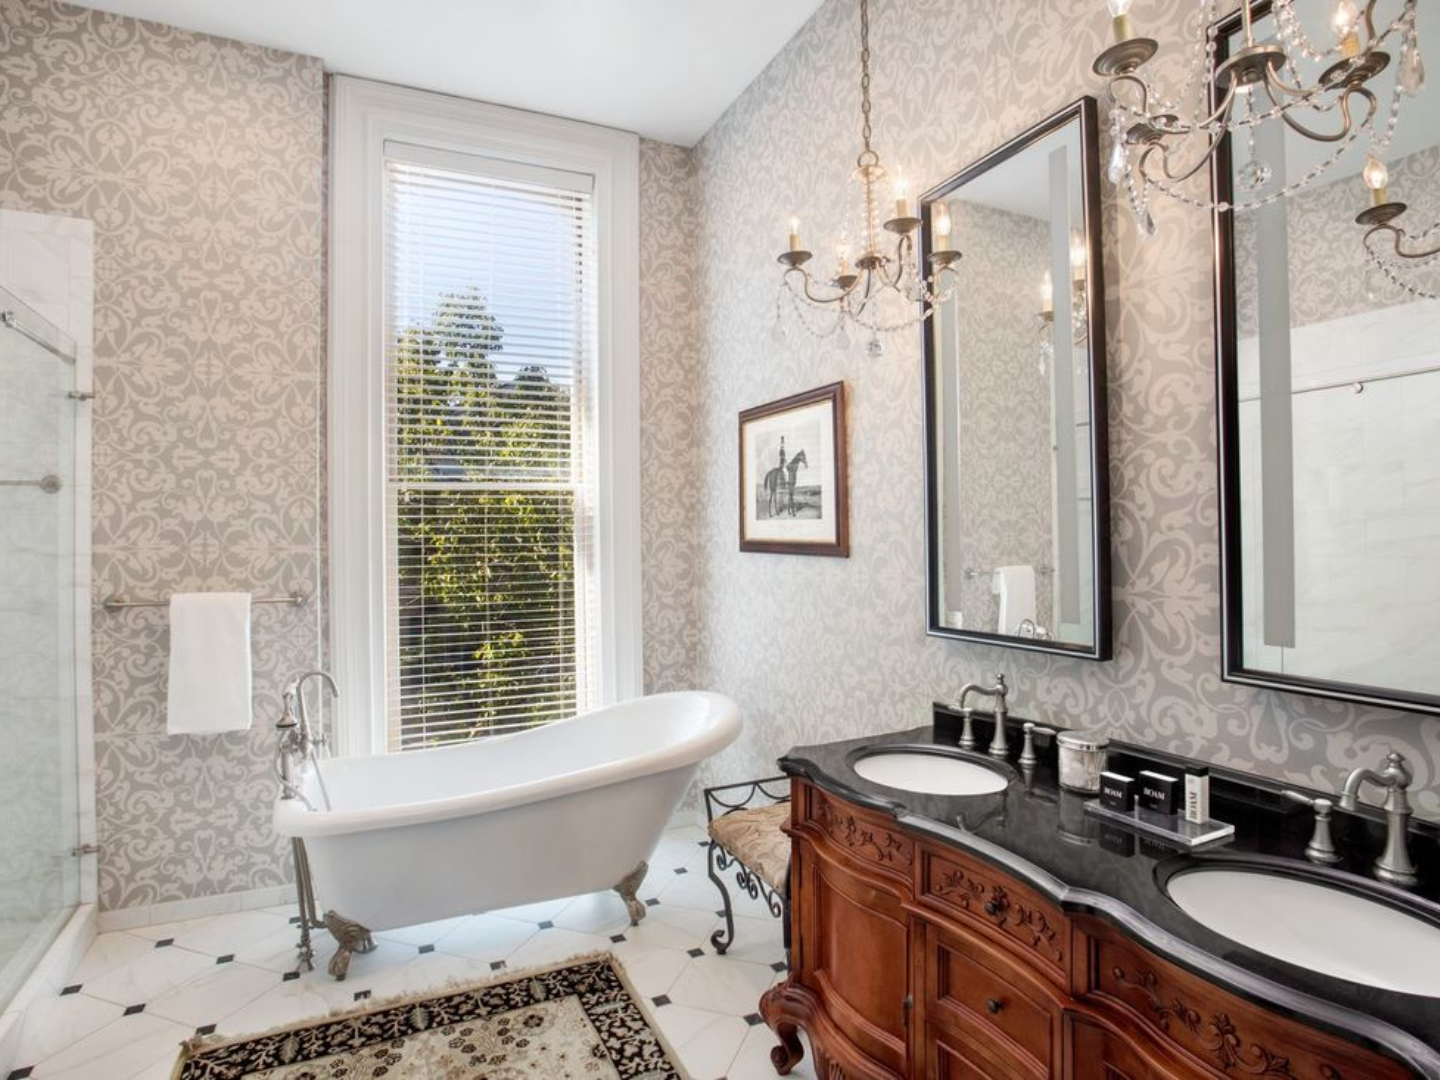 A room with a large tub next to a sink at Hamilton-Turner Inn.